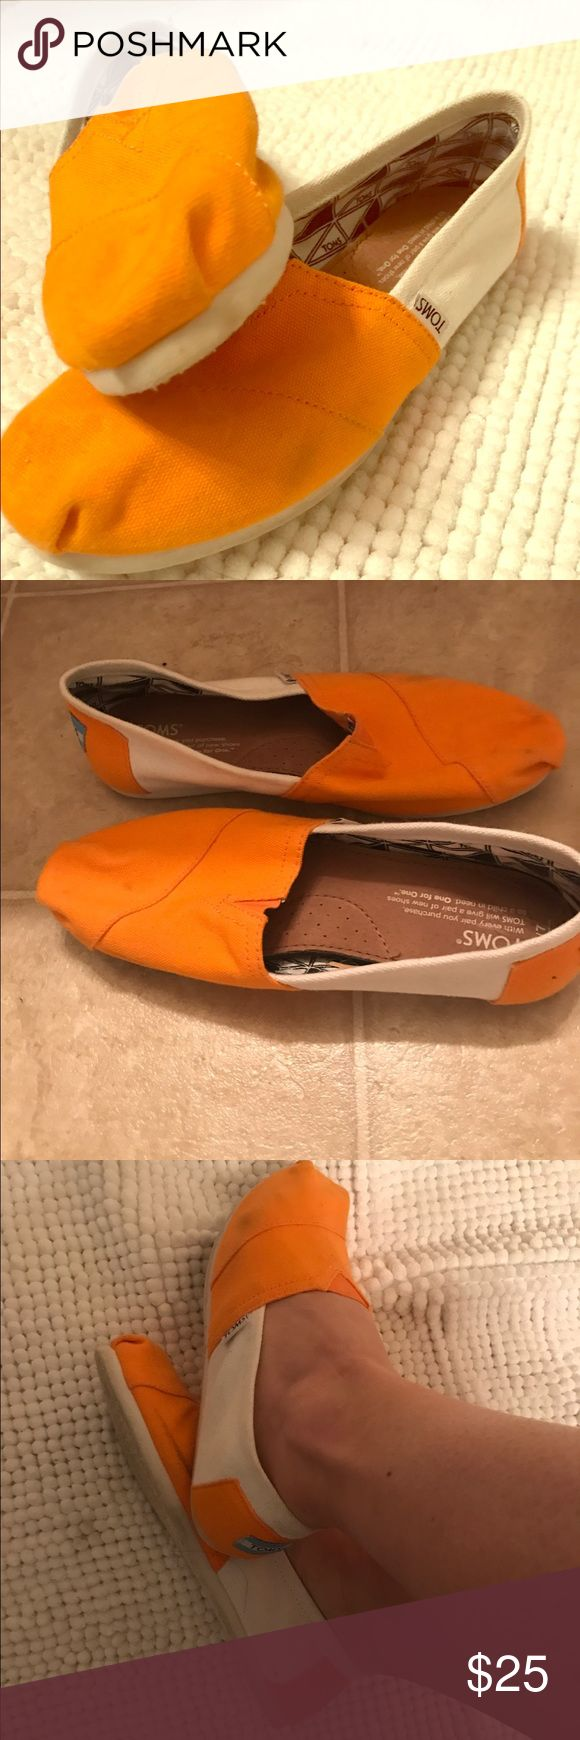 Orange and White Classic Canvas Toms Awesome spin on the classic Tom. I bought them to wear to a University of Tennessee game. TOMS Shoes Flats & Loafers